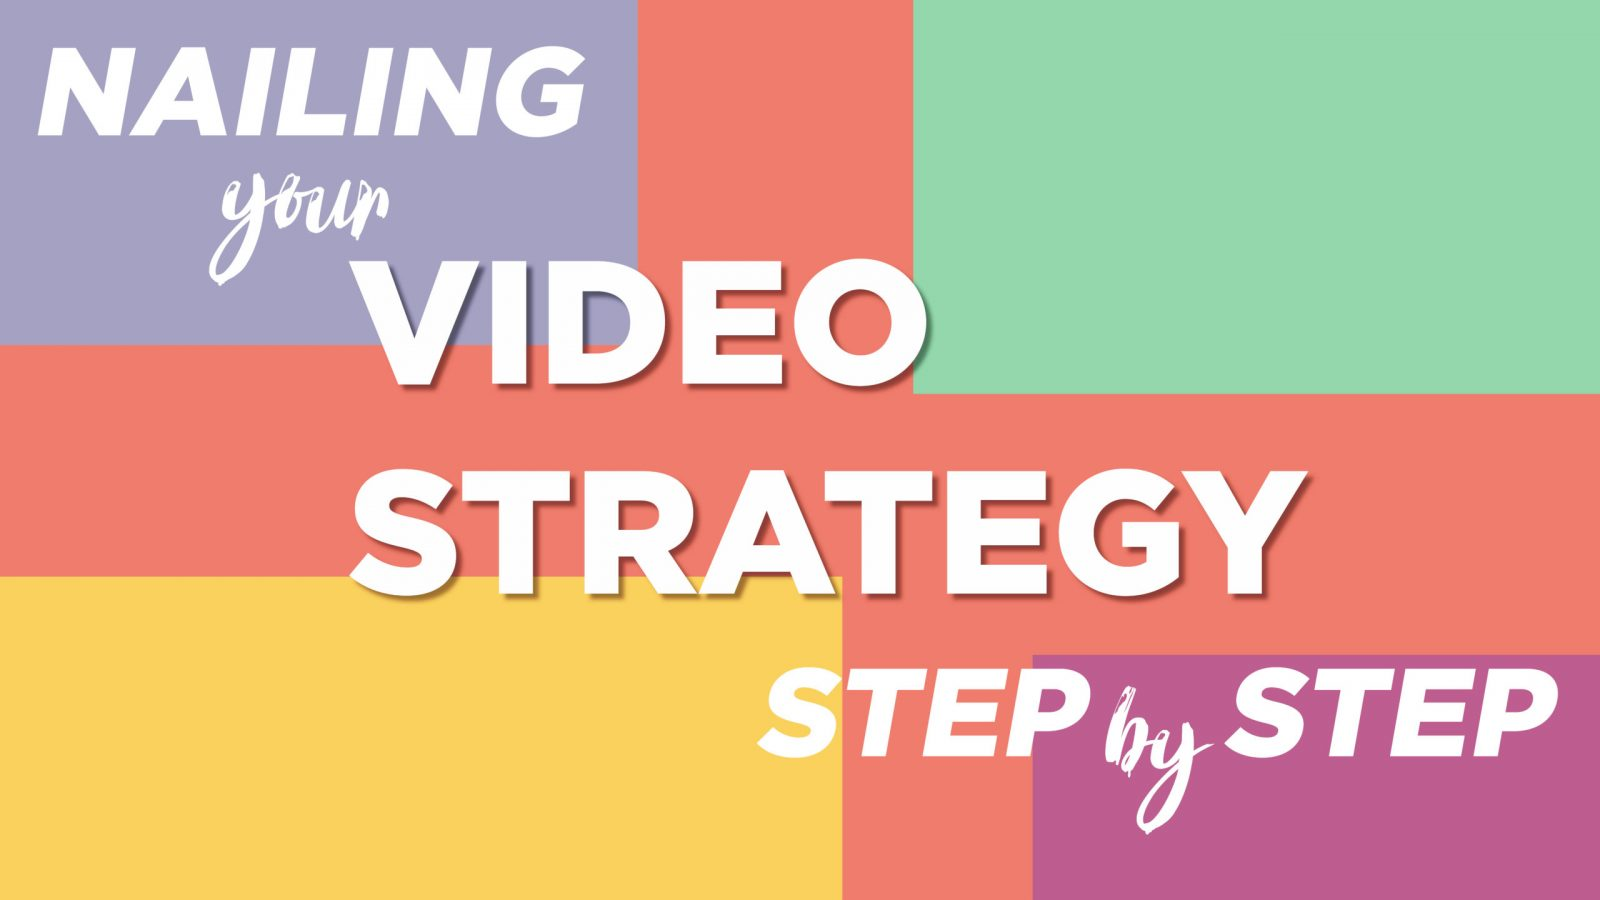 NAILING YOUR VIDEO STRATEGY STEP-BY-STEP